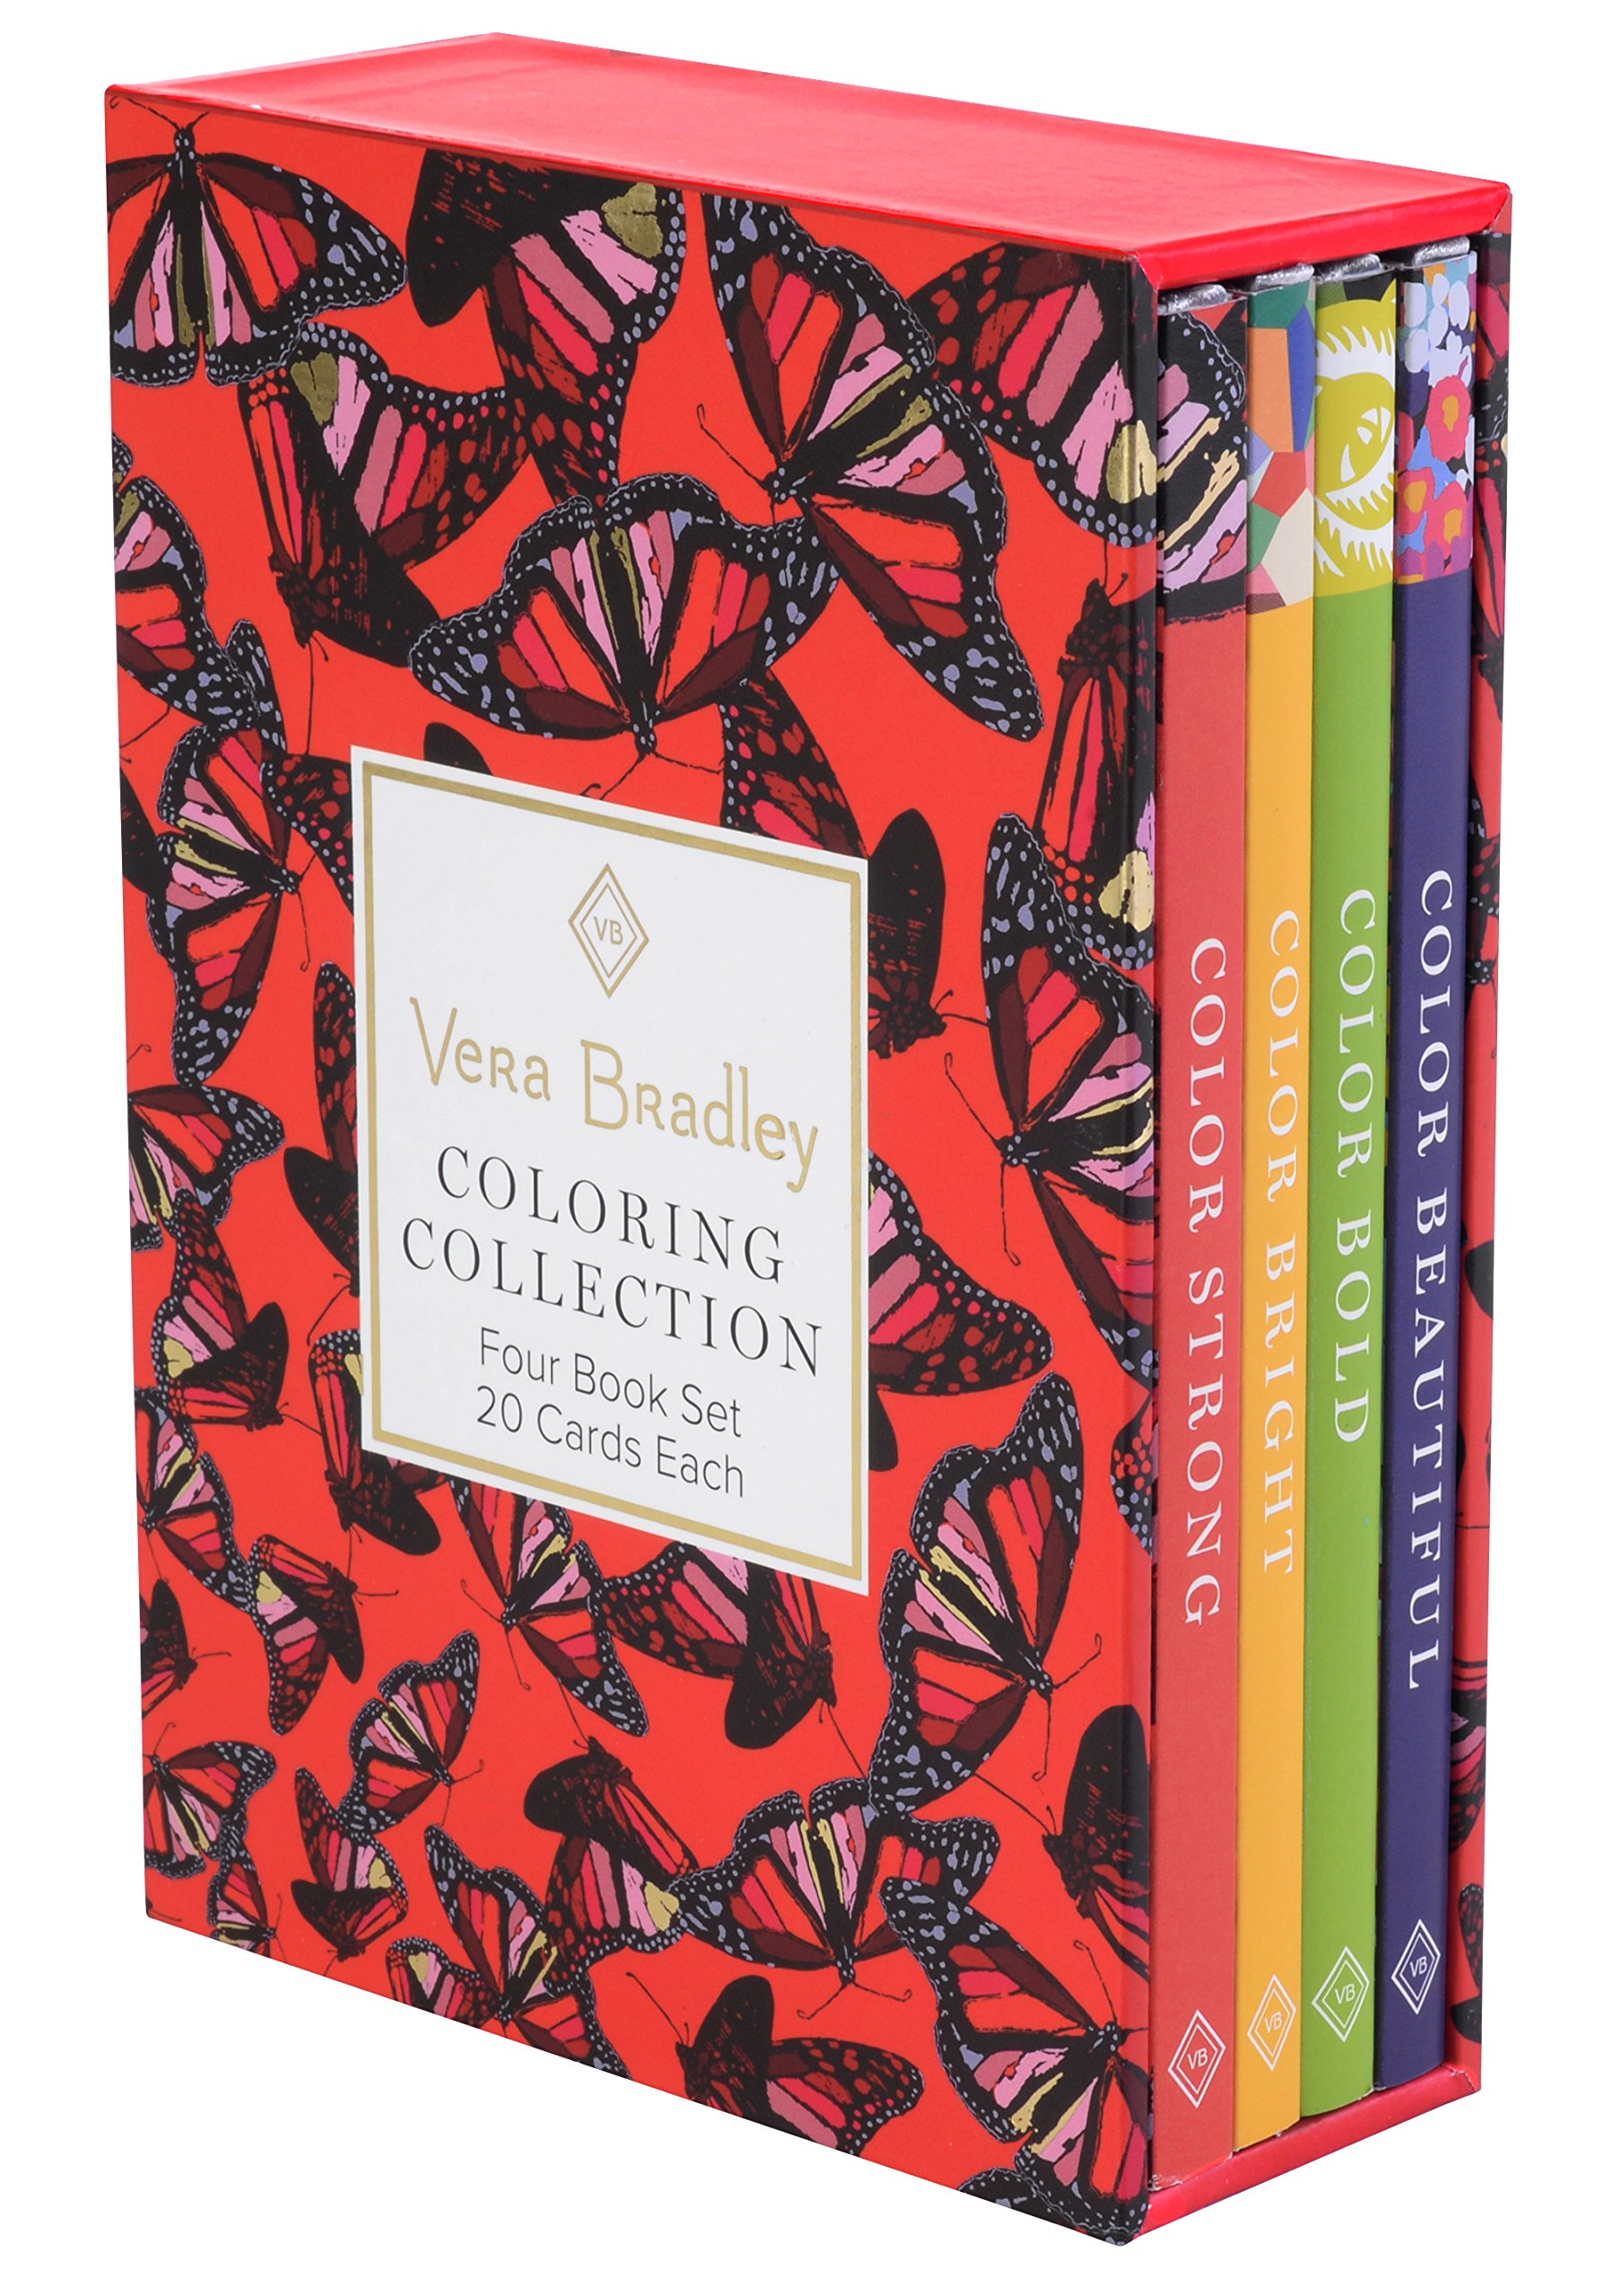 Vera Bradley Coloring Collection (Design Originals) 4 Book Set with Slipcase includes Beautiful, Bold, Bright, & Strong: 80 Authentic Designs on High-Quality Cardstock That Won't Bleed Through